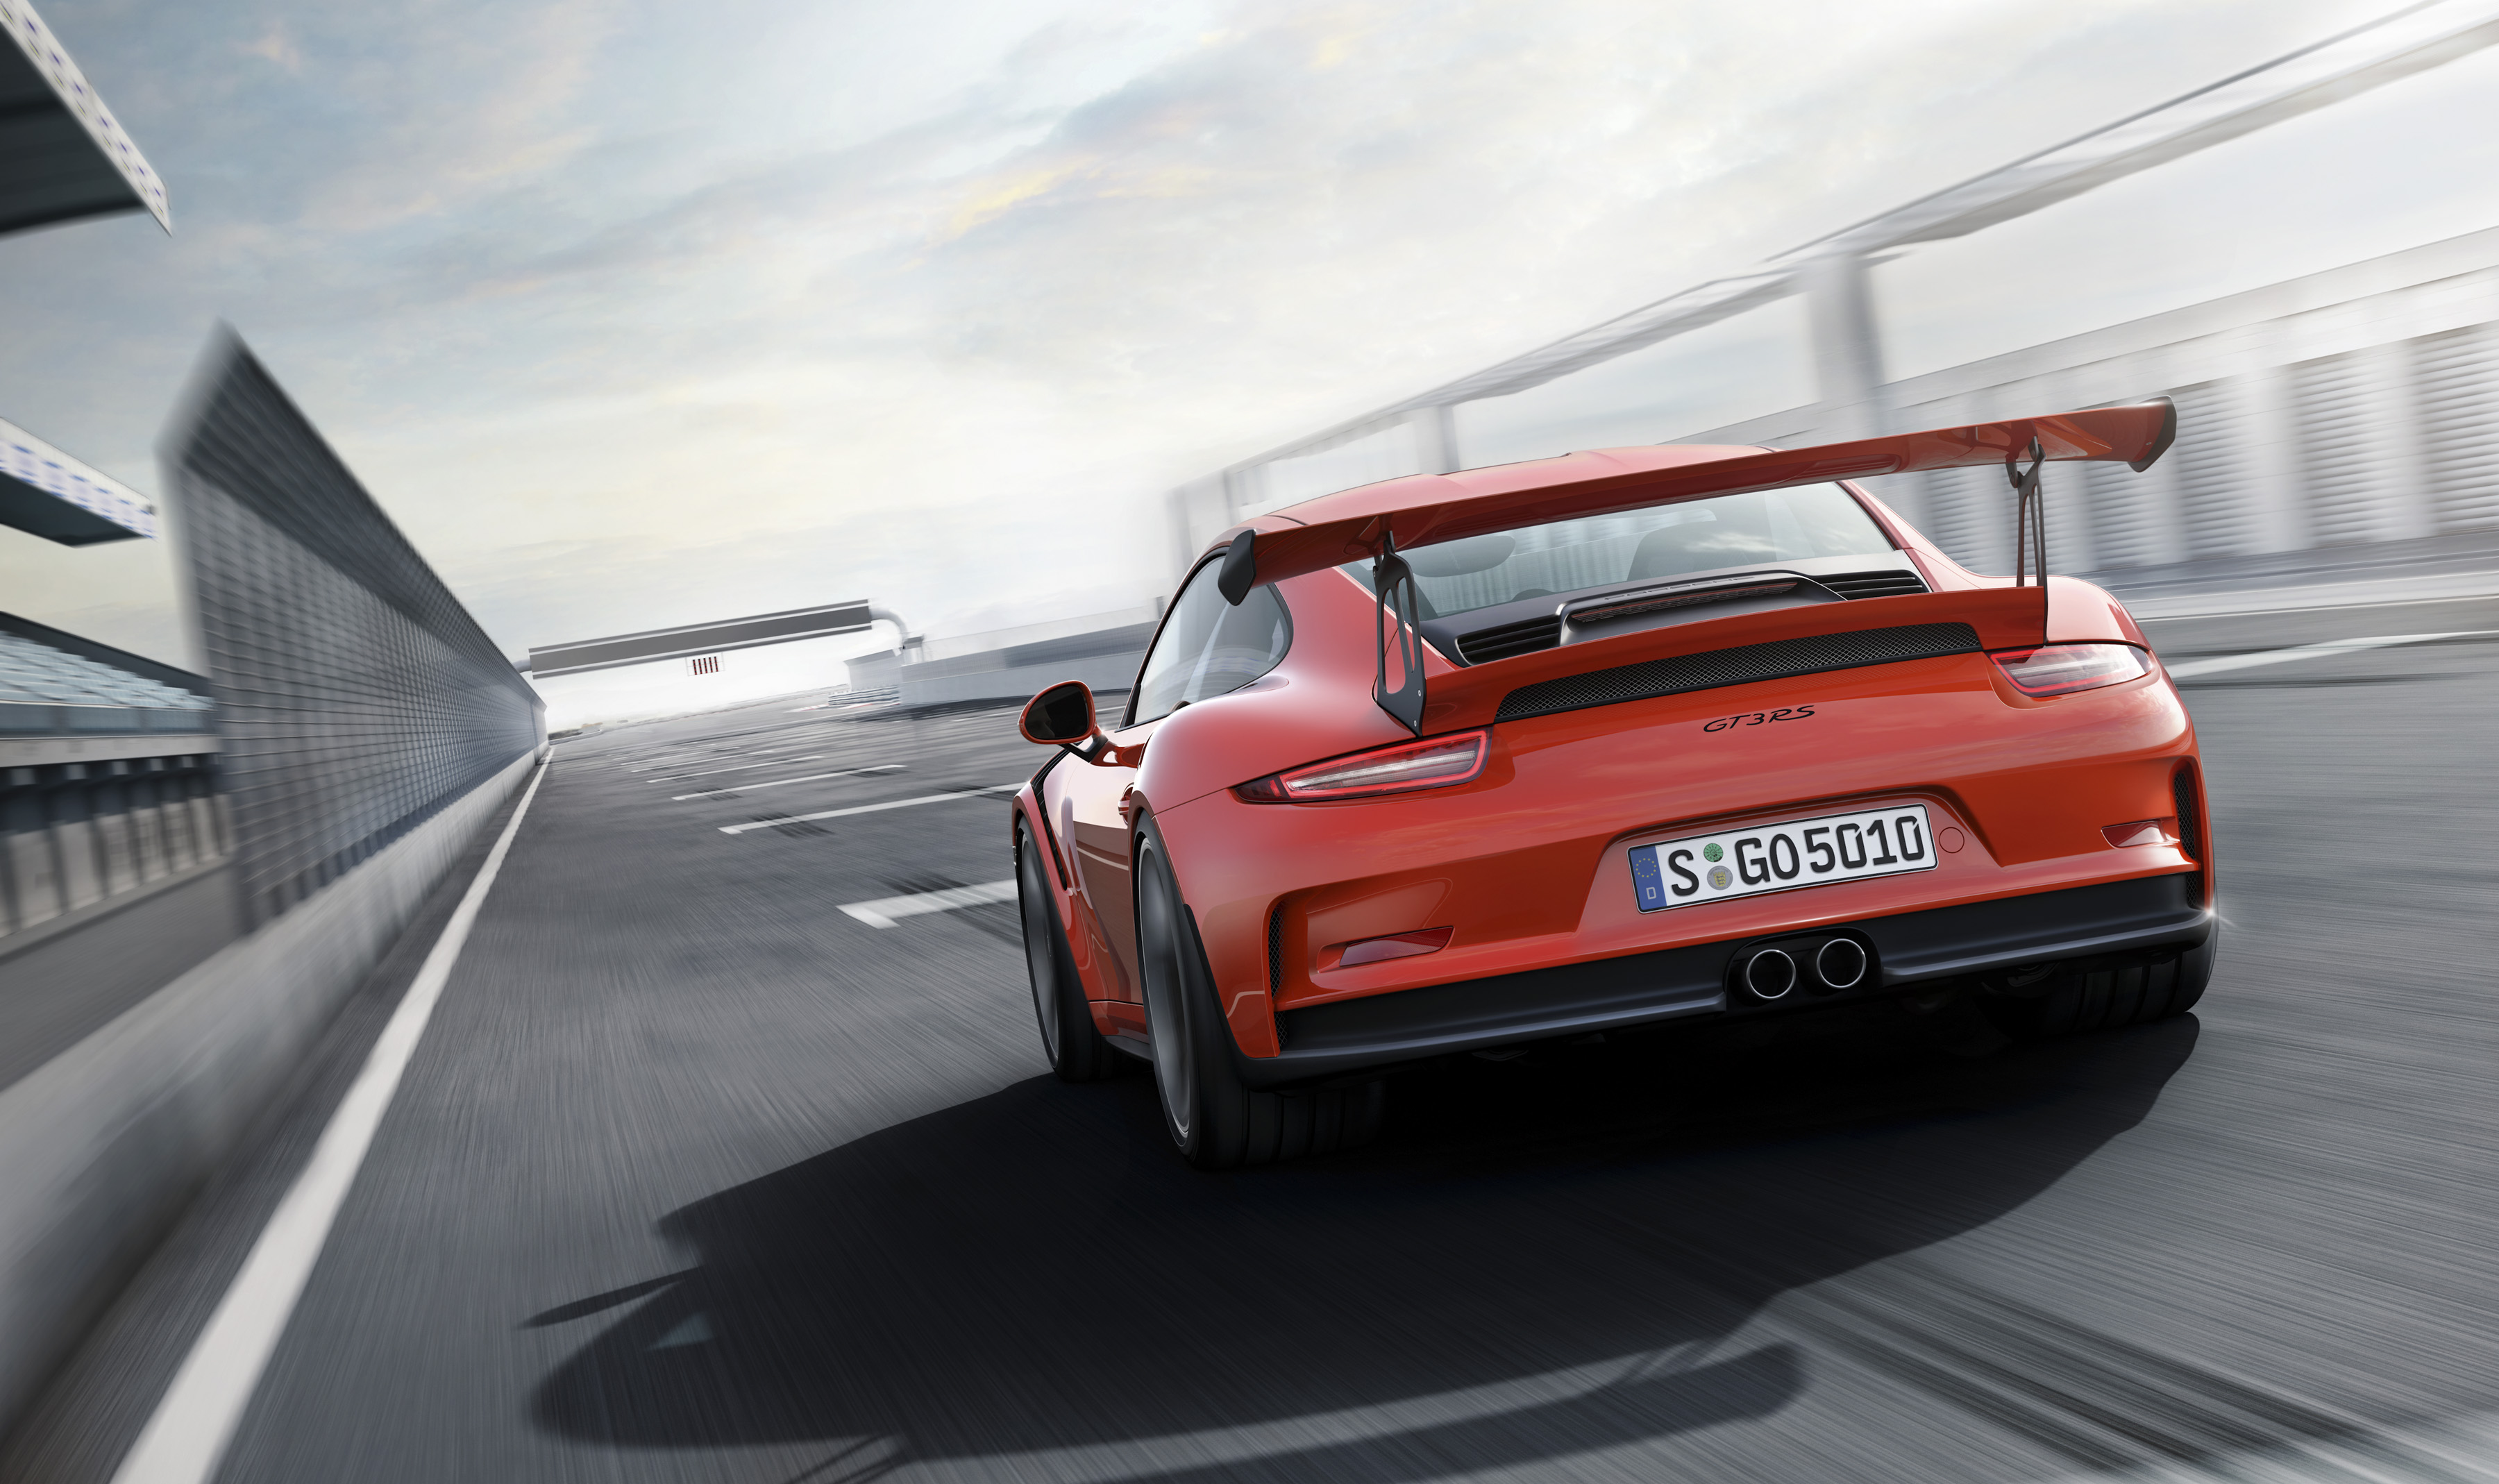 VIDEO New Porsche GT RS The Race Car For The Circuit - Gb sports cars zero